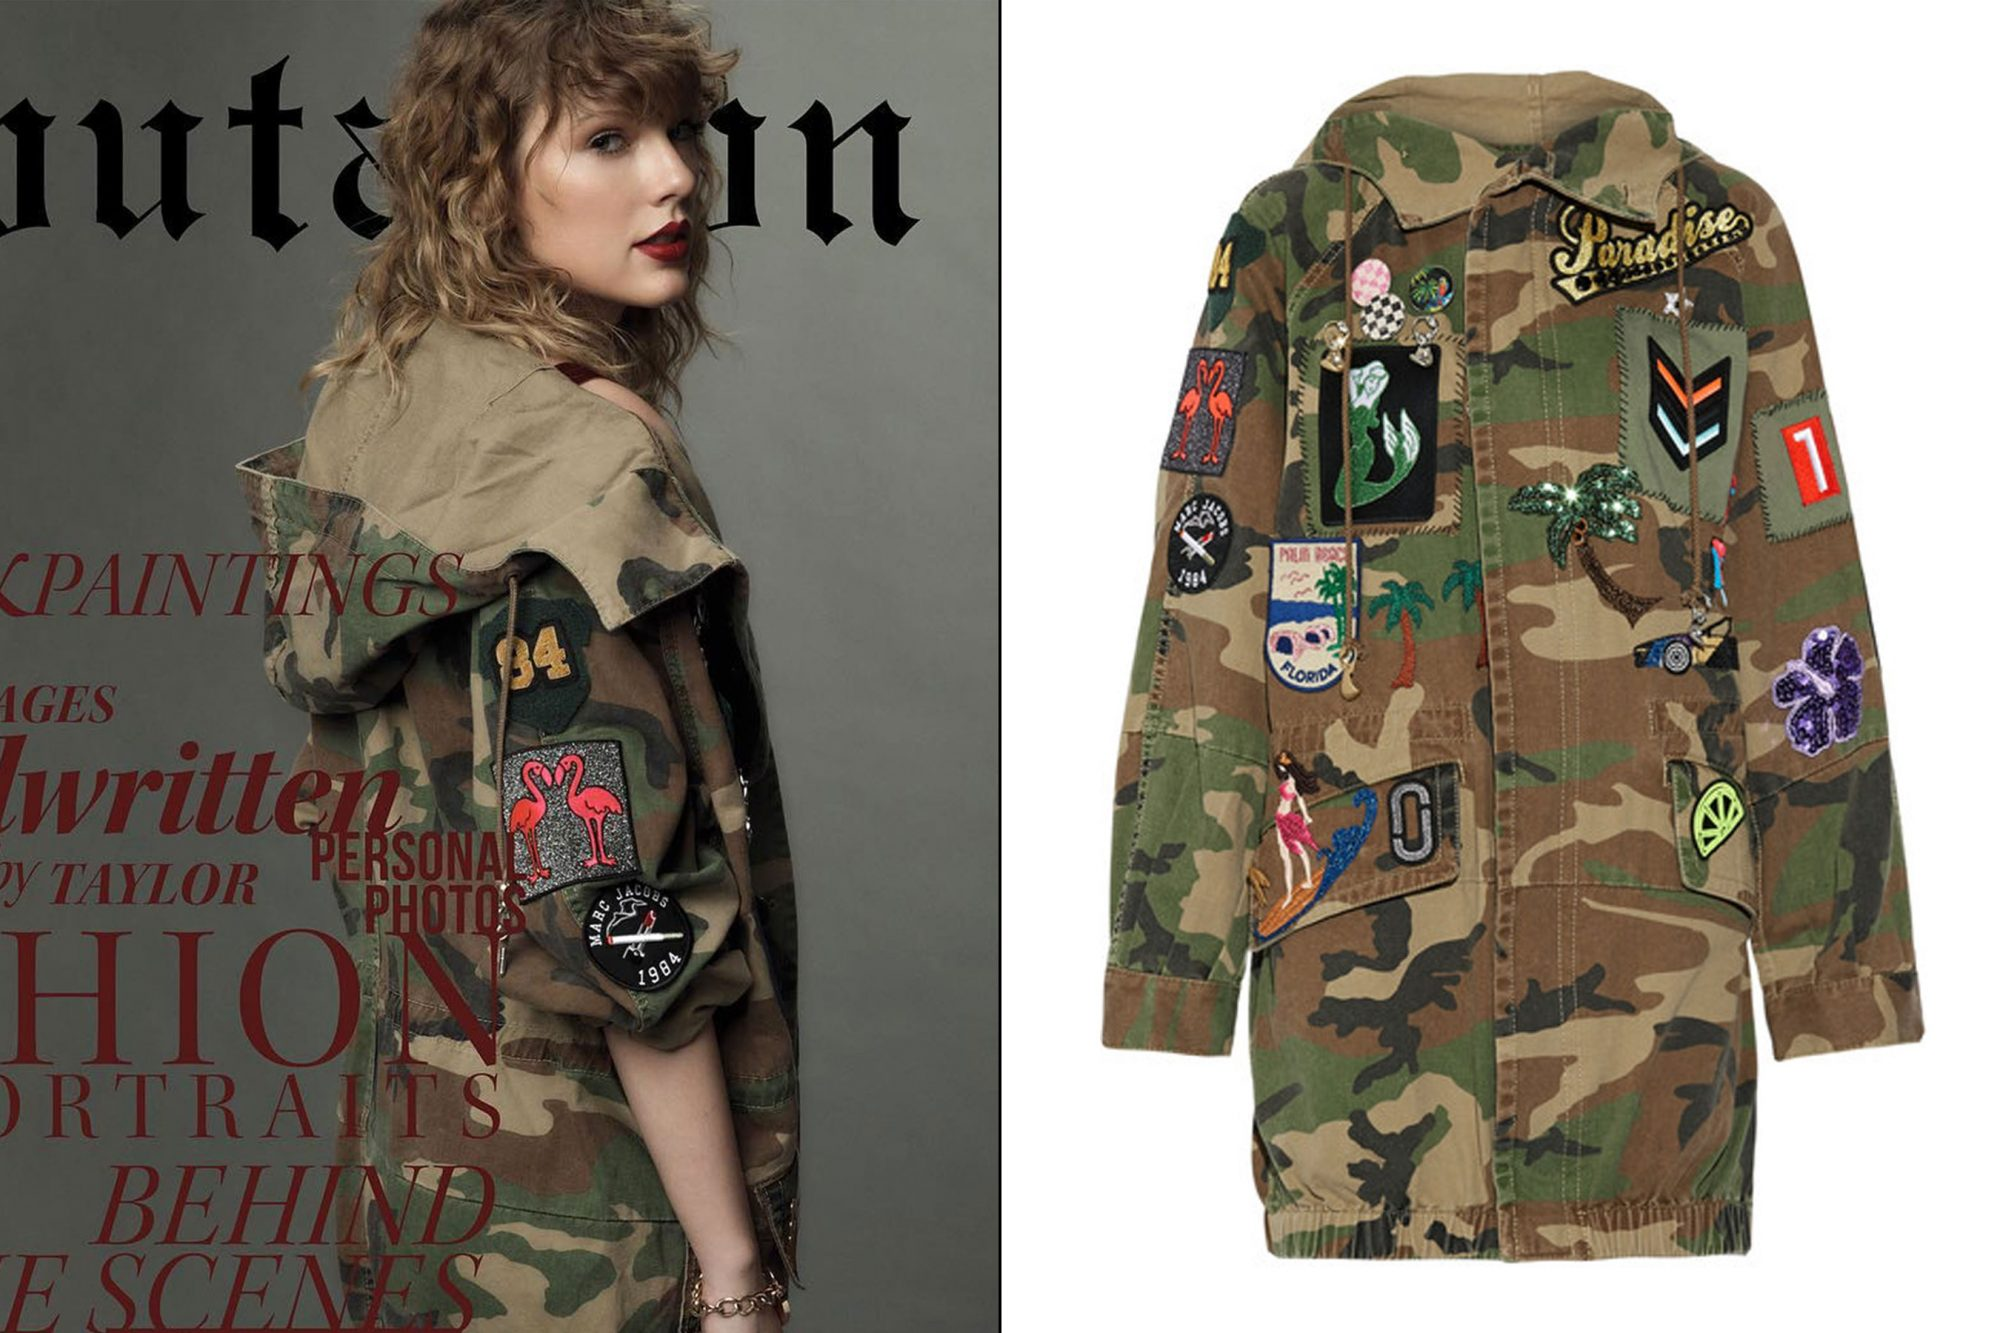 Reputation, Volume II: Army jacket